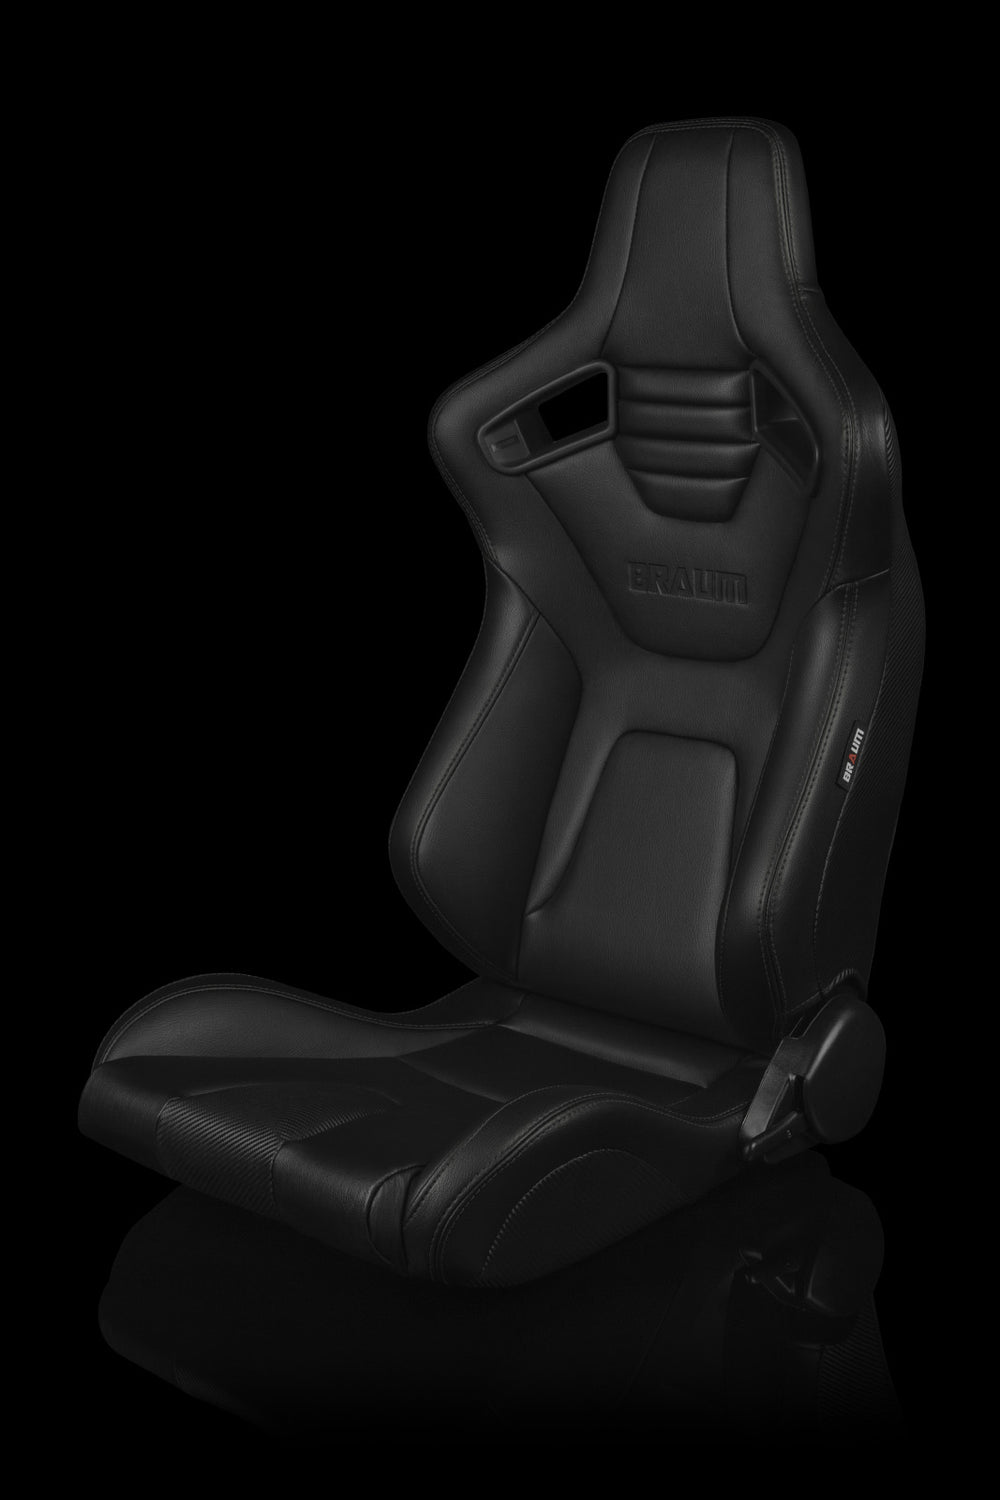 ELITE-X SERIES RACING SEATS (BLACK STITCHING) – PAIR